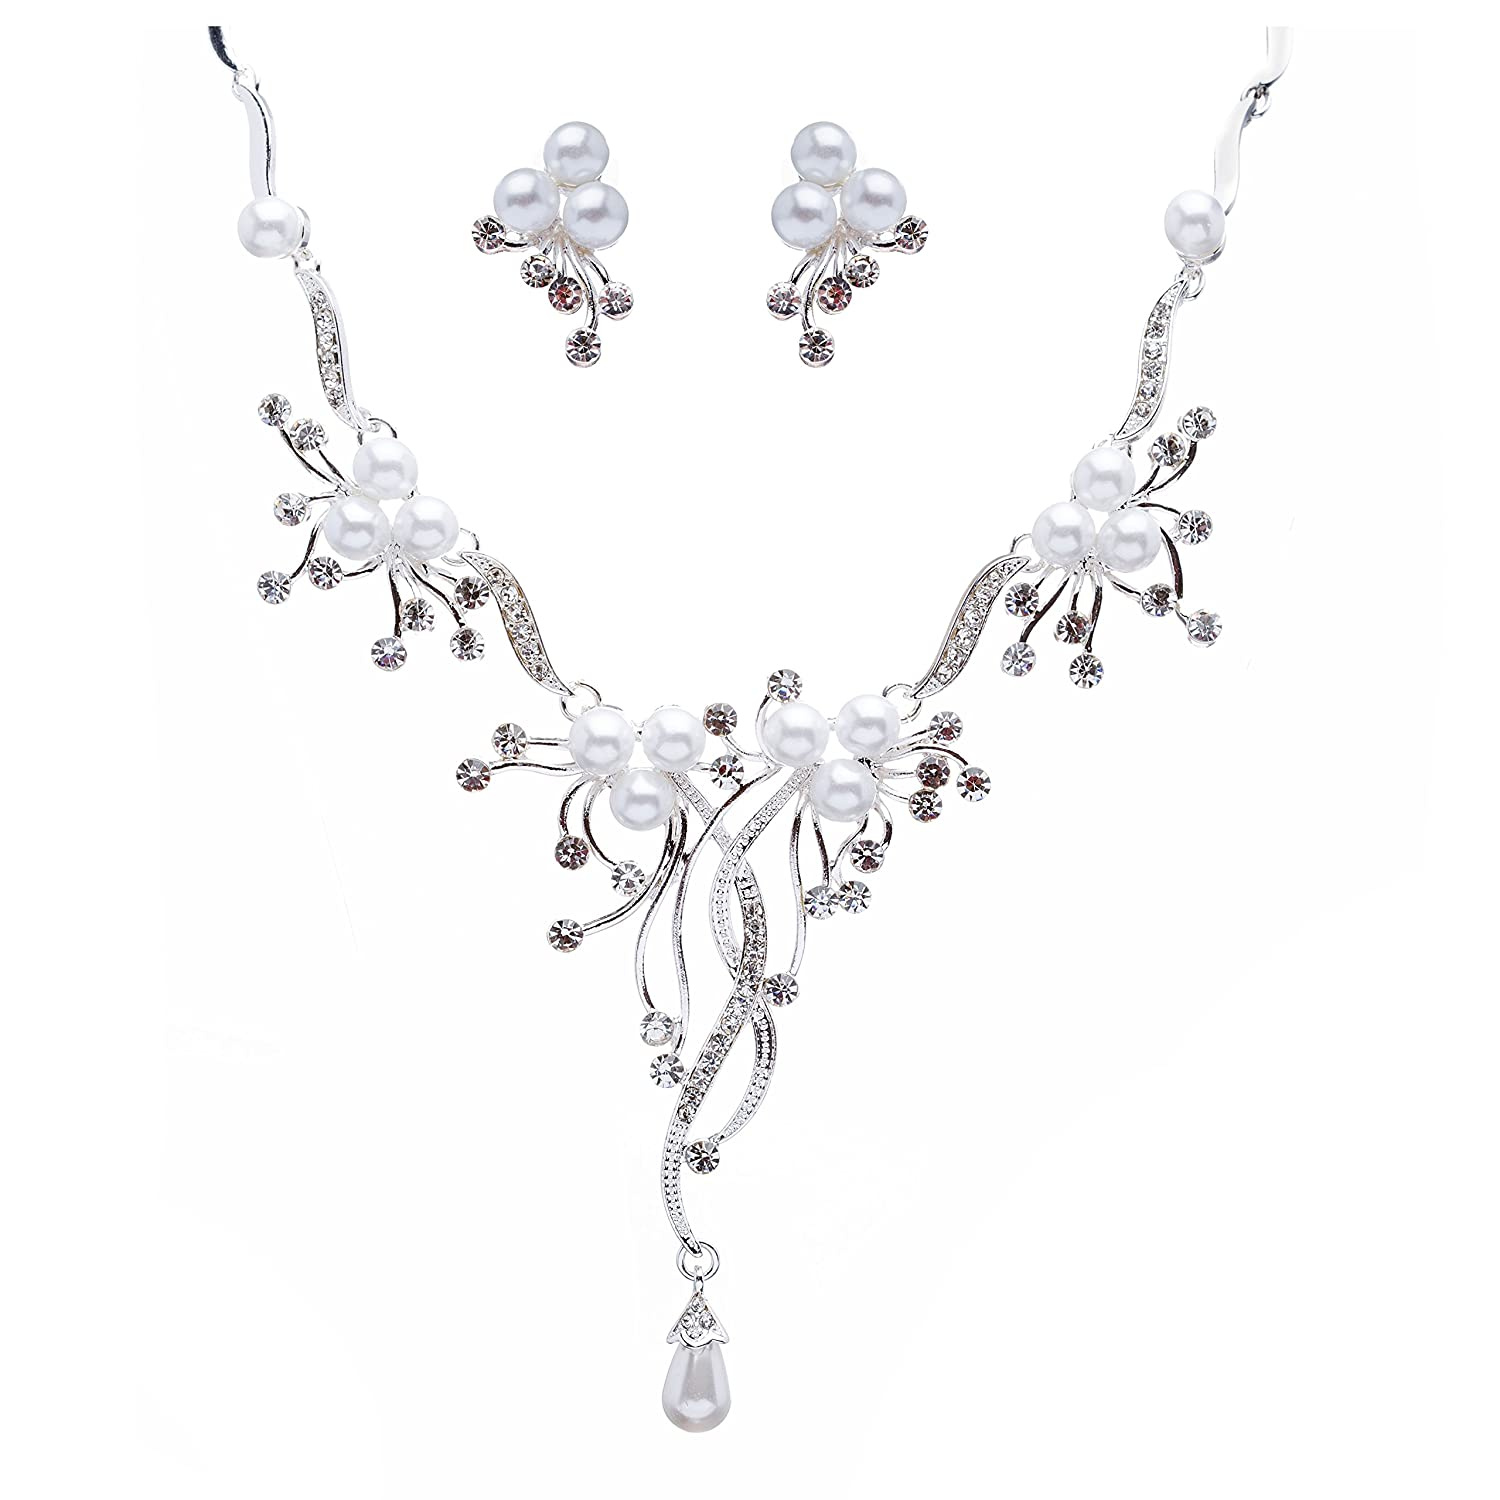 Fashion Jewelry Fine Bridal/ Prom/ Wedding/ Party Rhodium Plated Clear/ Black Austrian Crystal Flower Selected Material